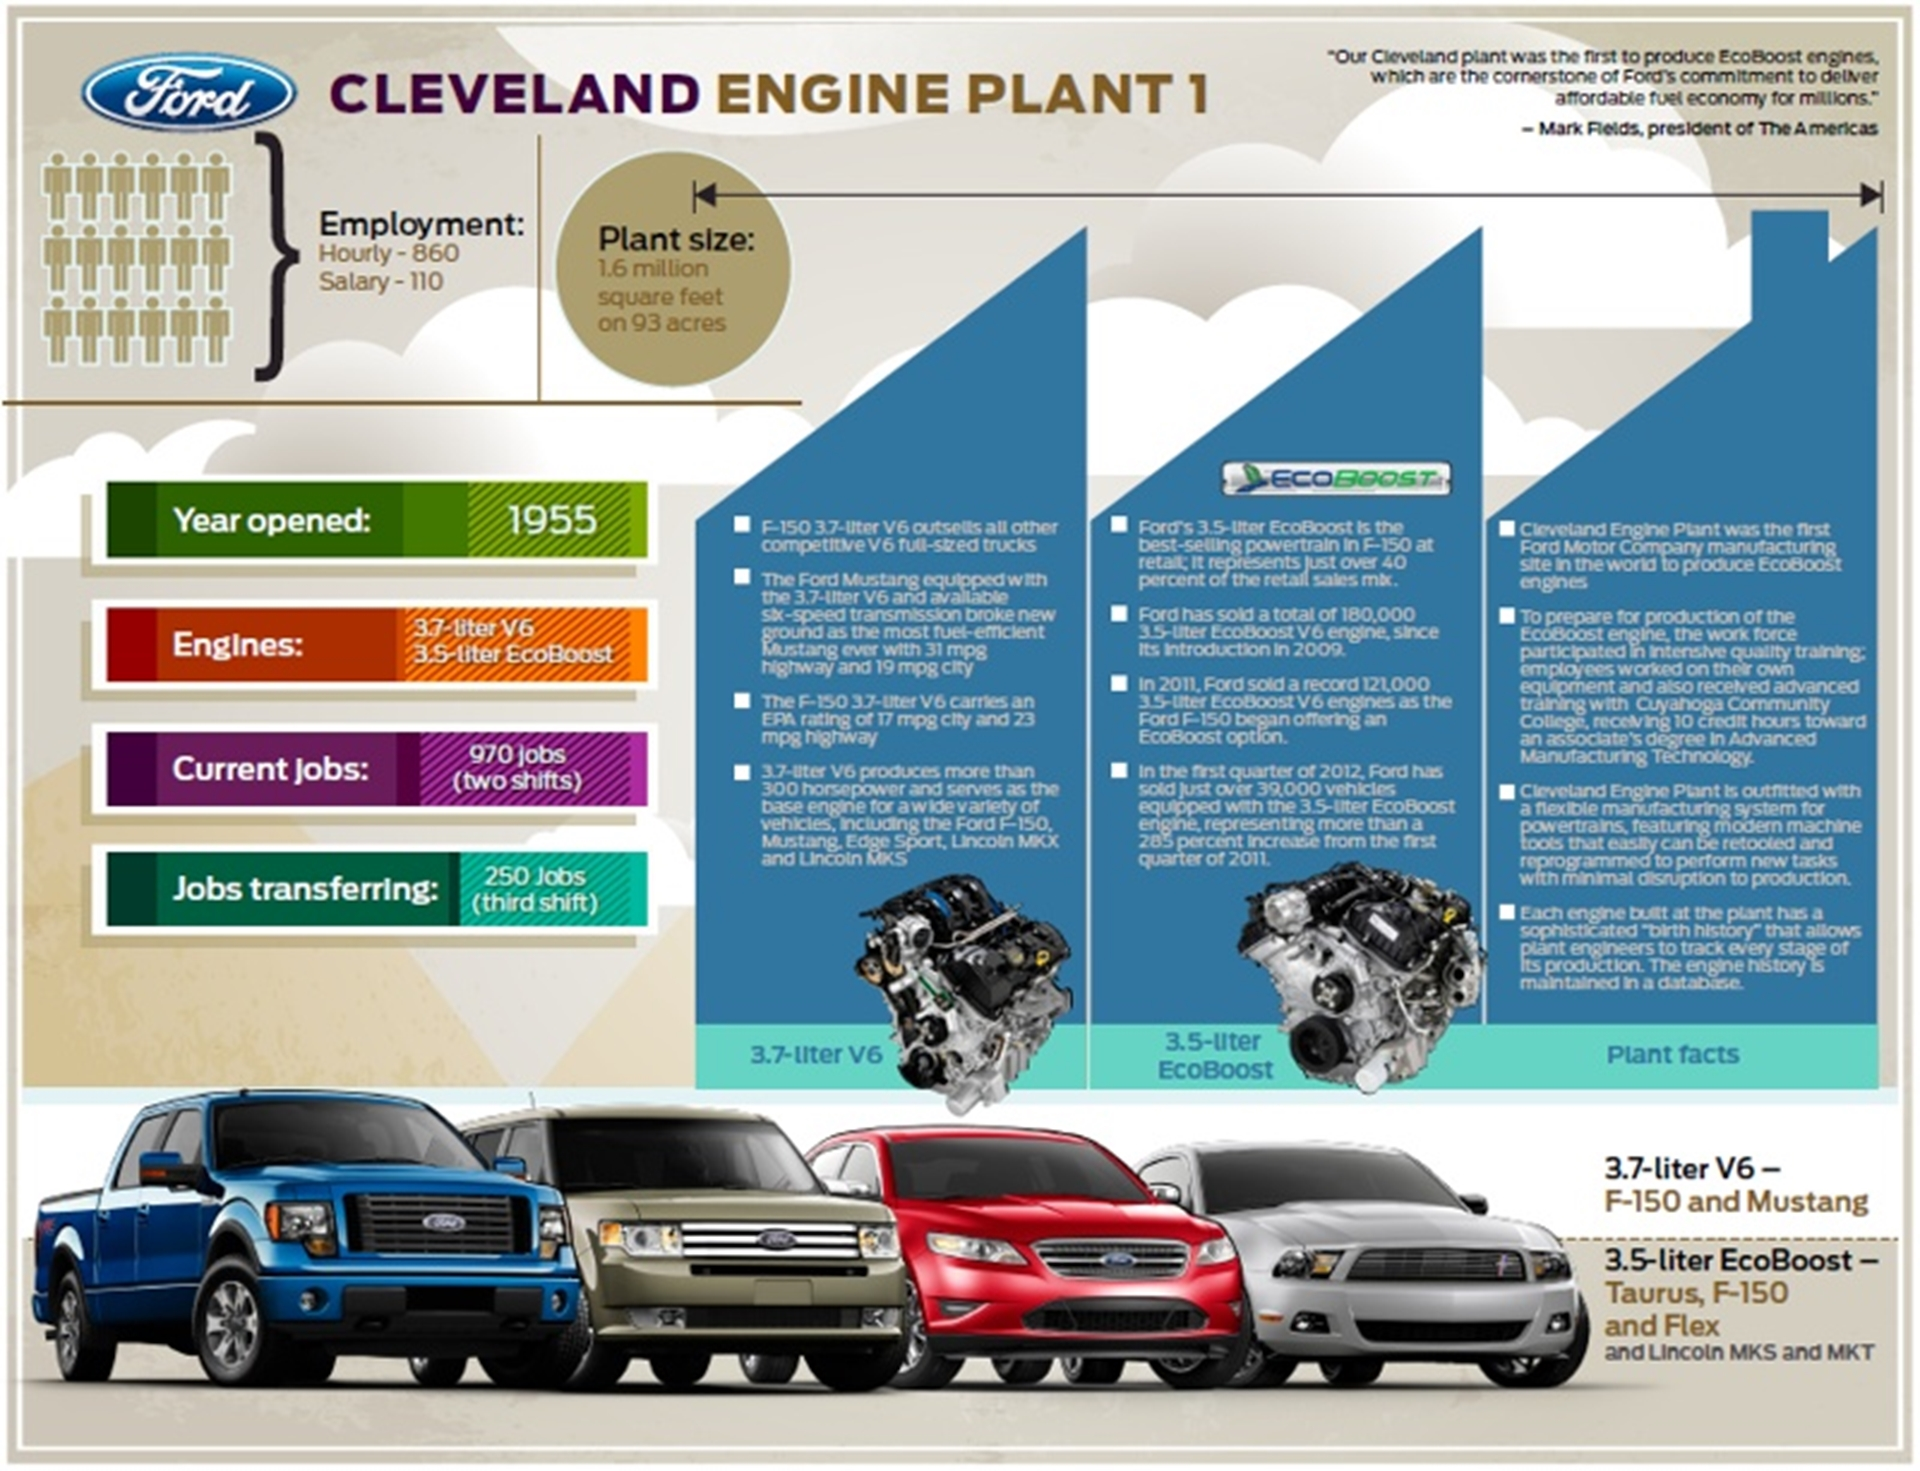 Ford Cleveland Engine Plant